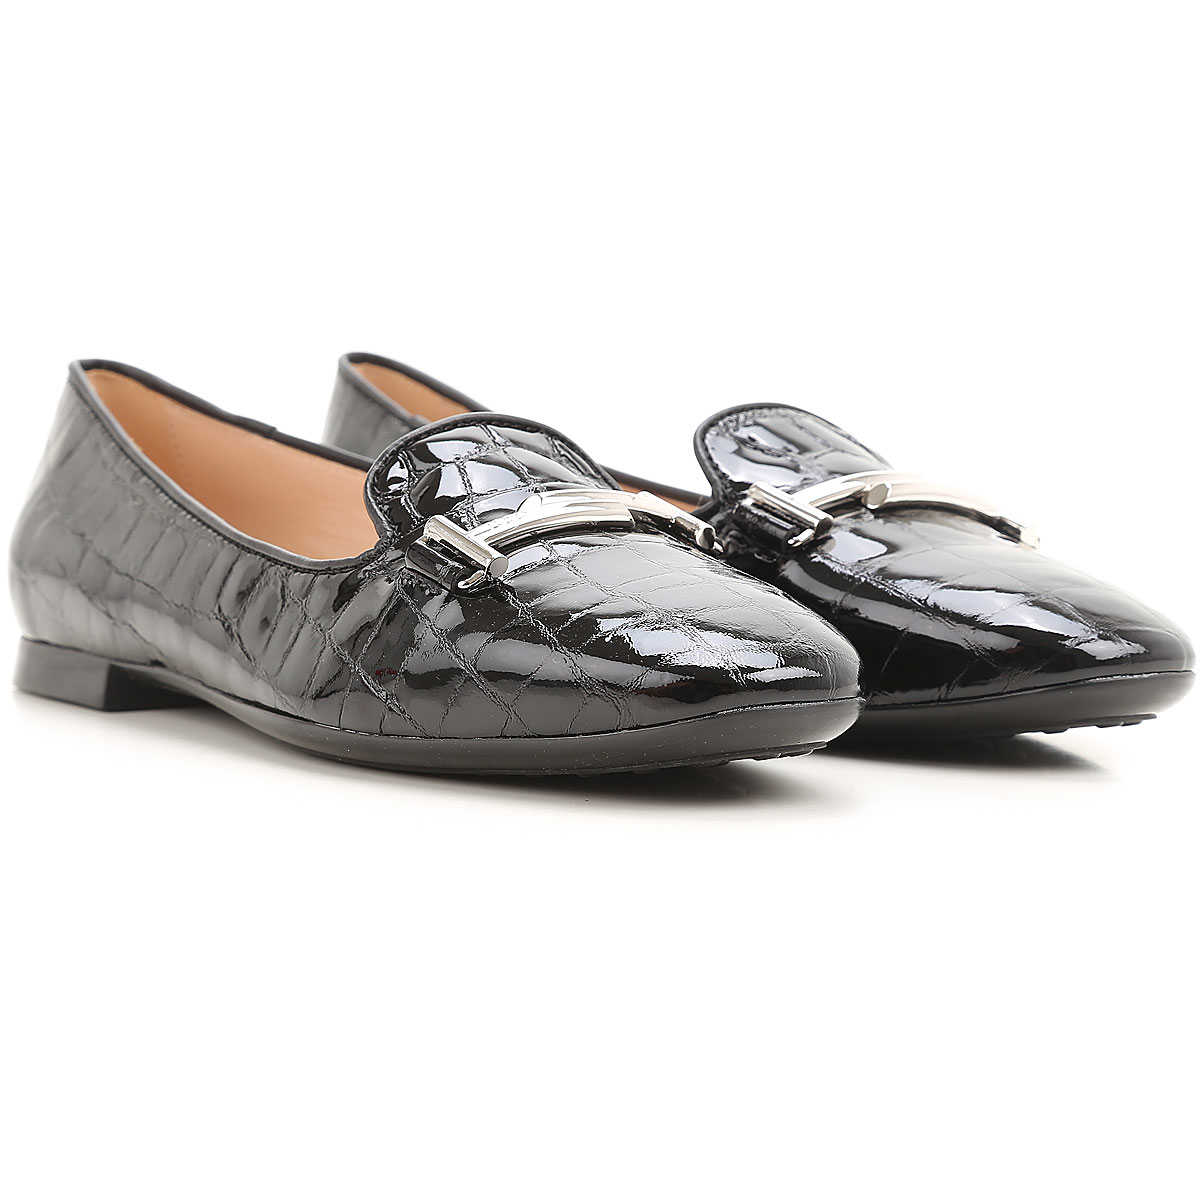 Tods Ballet Flats Ballerina Shoes for